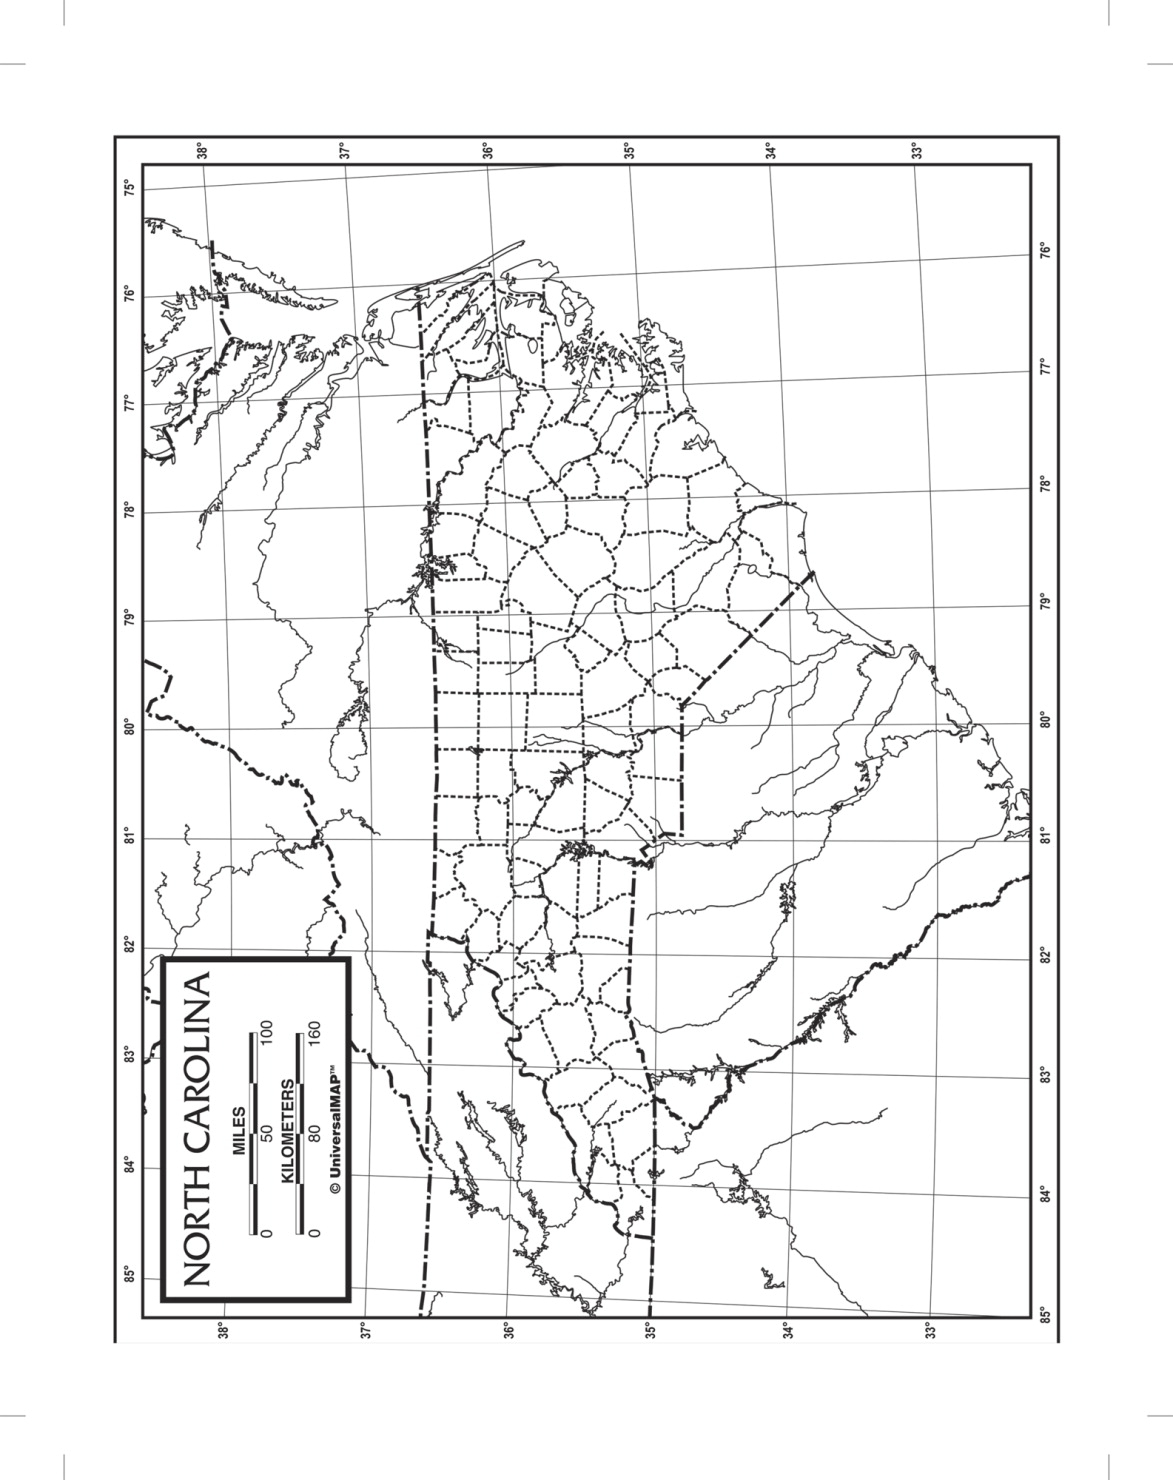 Kappa Map North Carolina Outline Map; Paper; 8-1/2 X 11 In; Pack Of 50 - 1573907 - Toys Literature For Social Studies 1573907